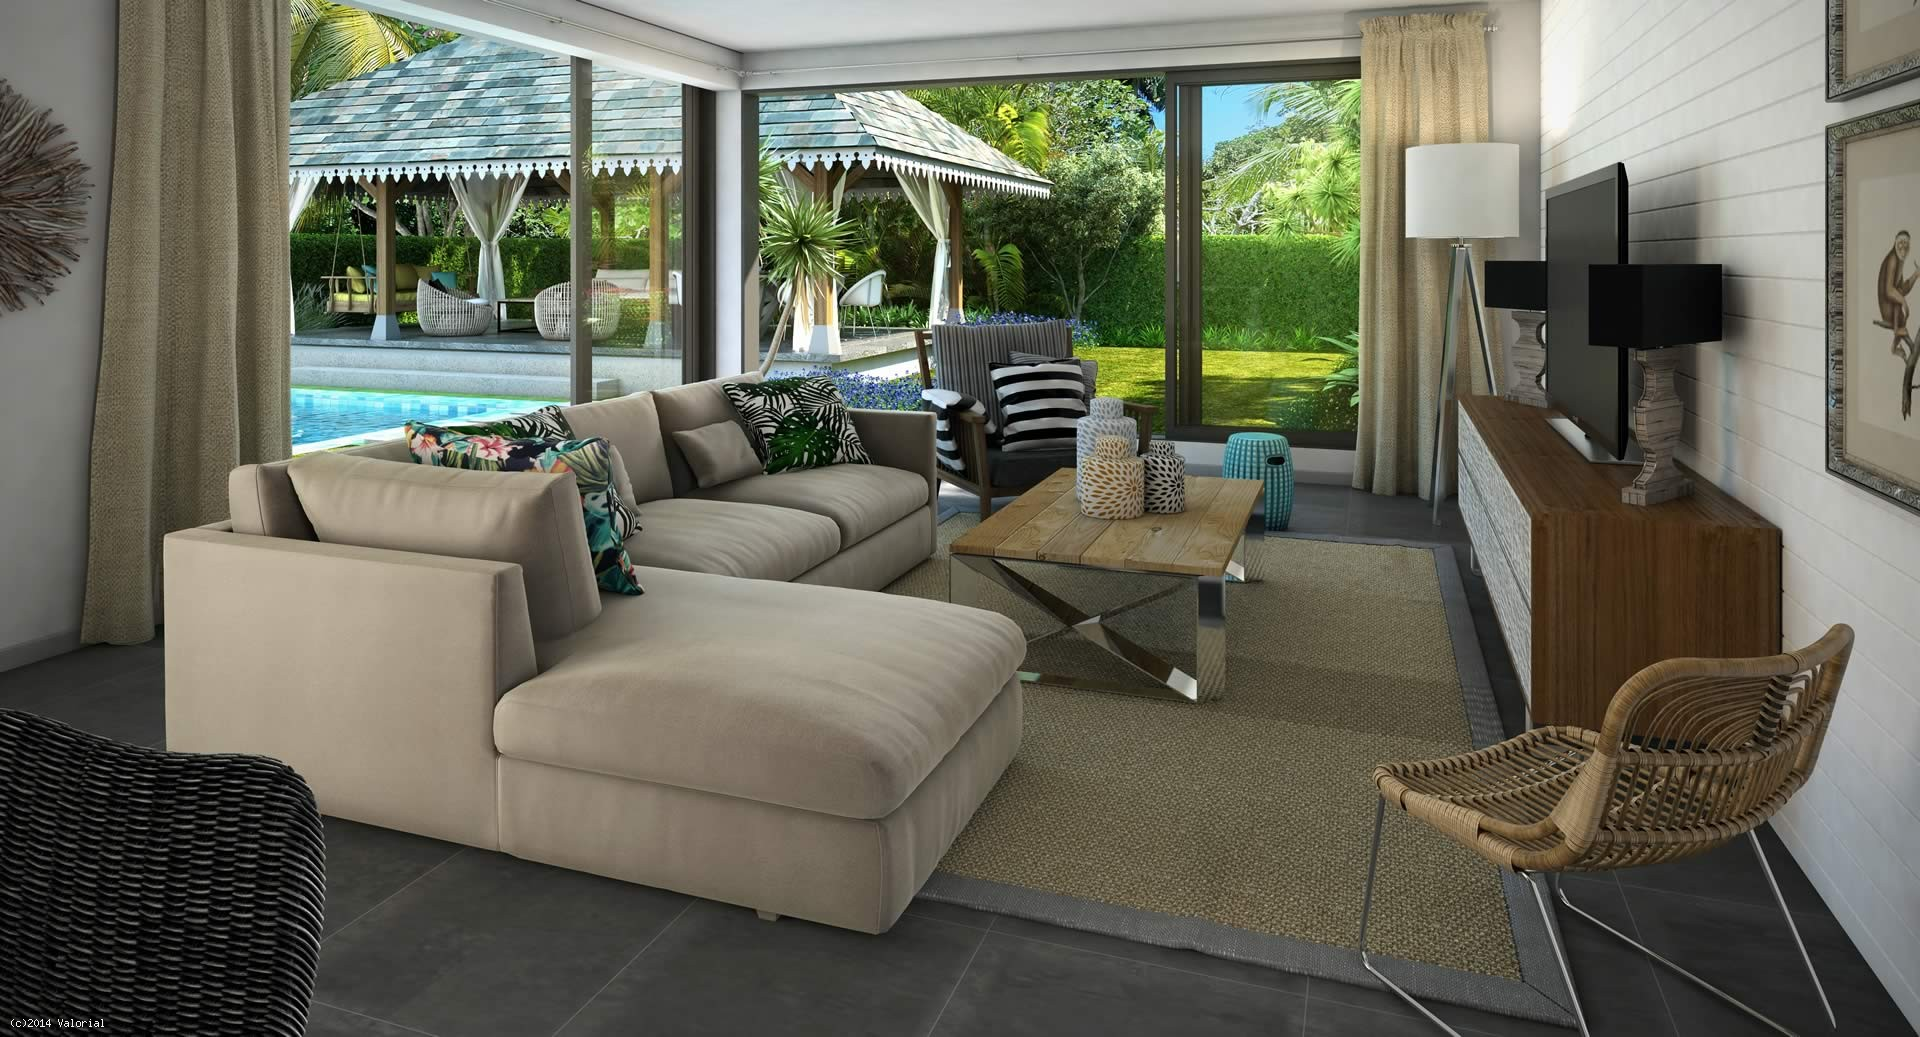 marguery-prestige-living54083cd0030a3